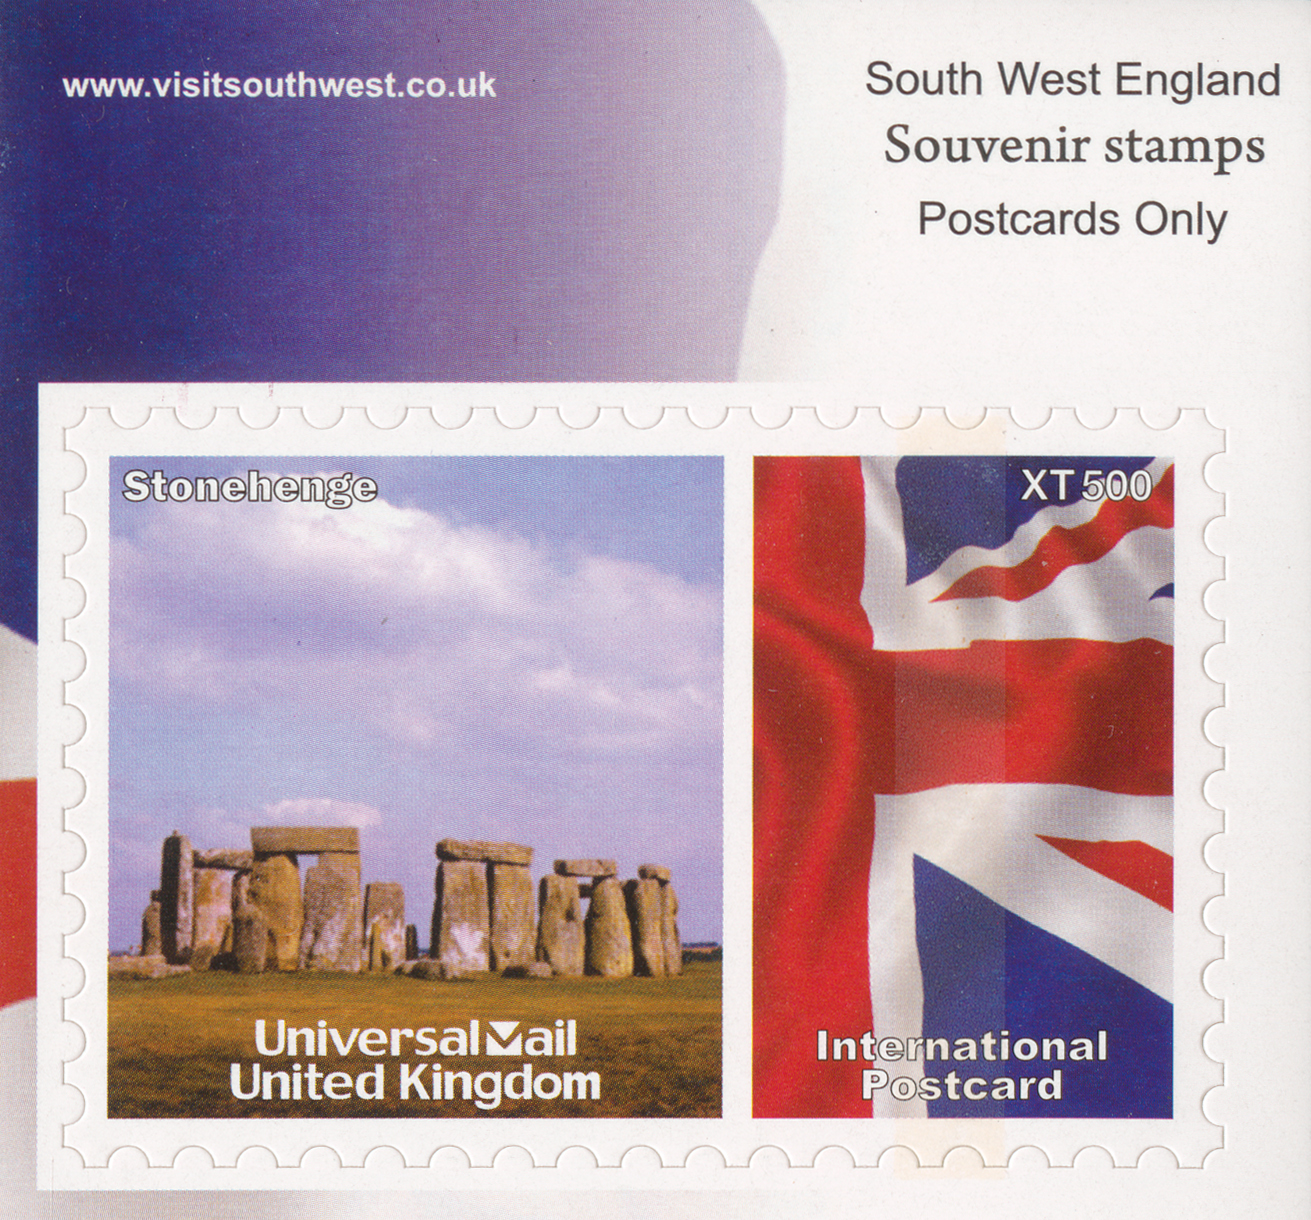 International Postcard stamp with image of Stonehenge.